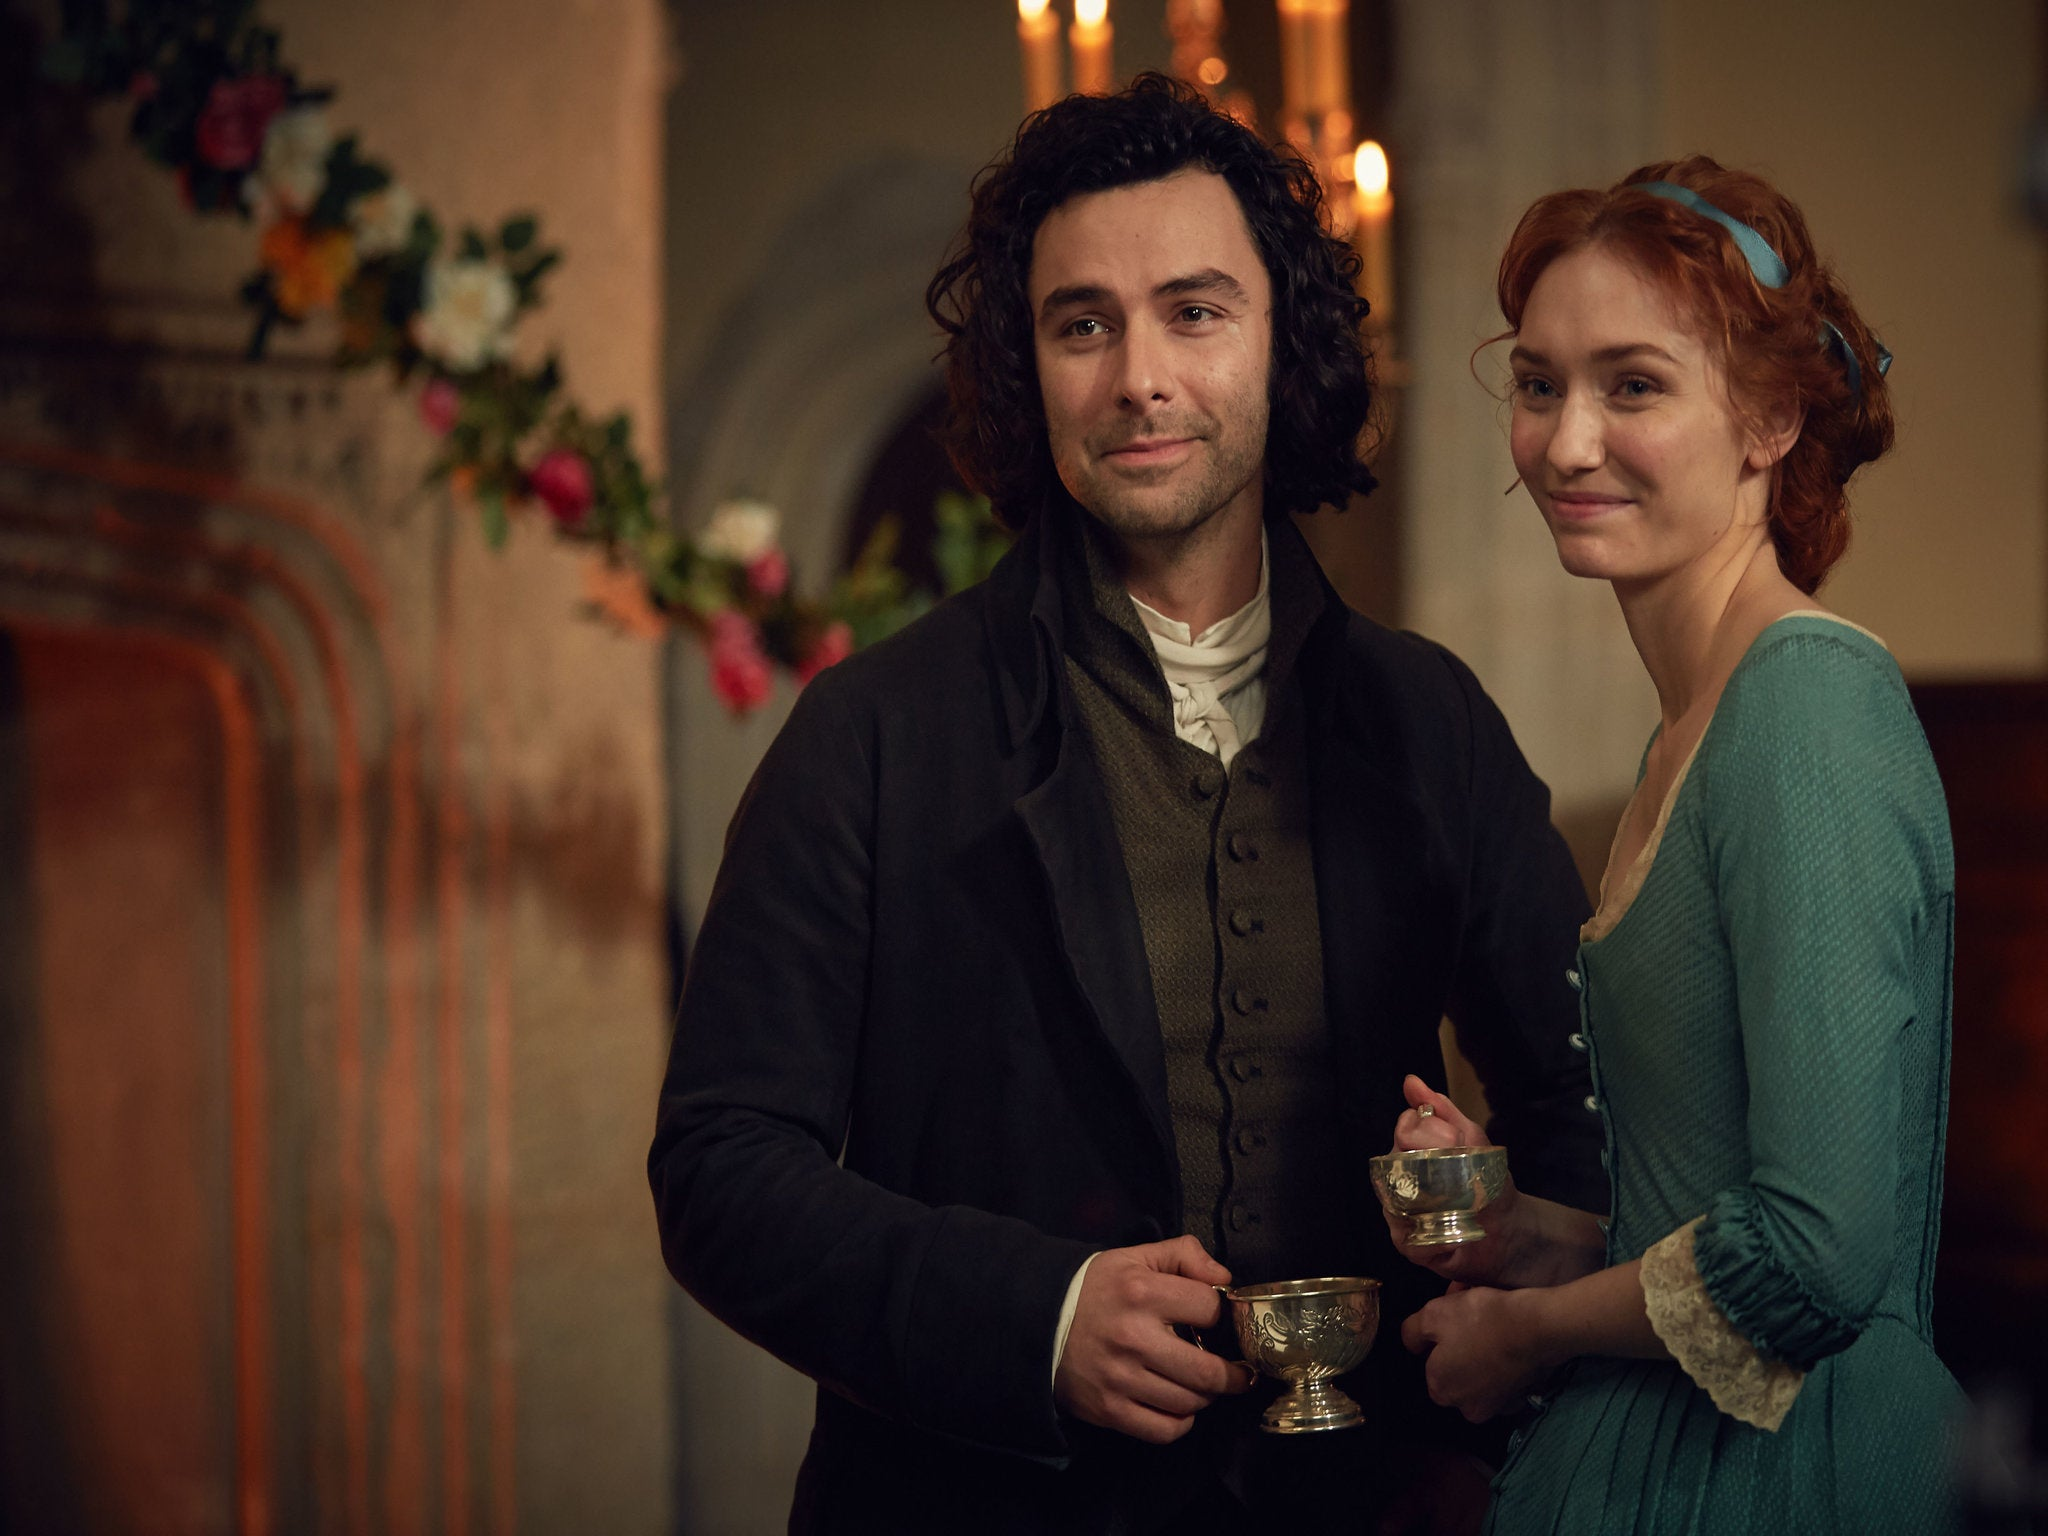 eleanor christian personals Poldark stars eleanor tomlinson, jack farthing, luke norris and christian brassington enter cream tea debate we also asked them about pasties and surfing - obviously.